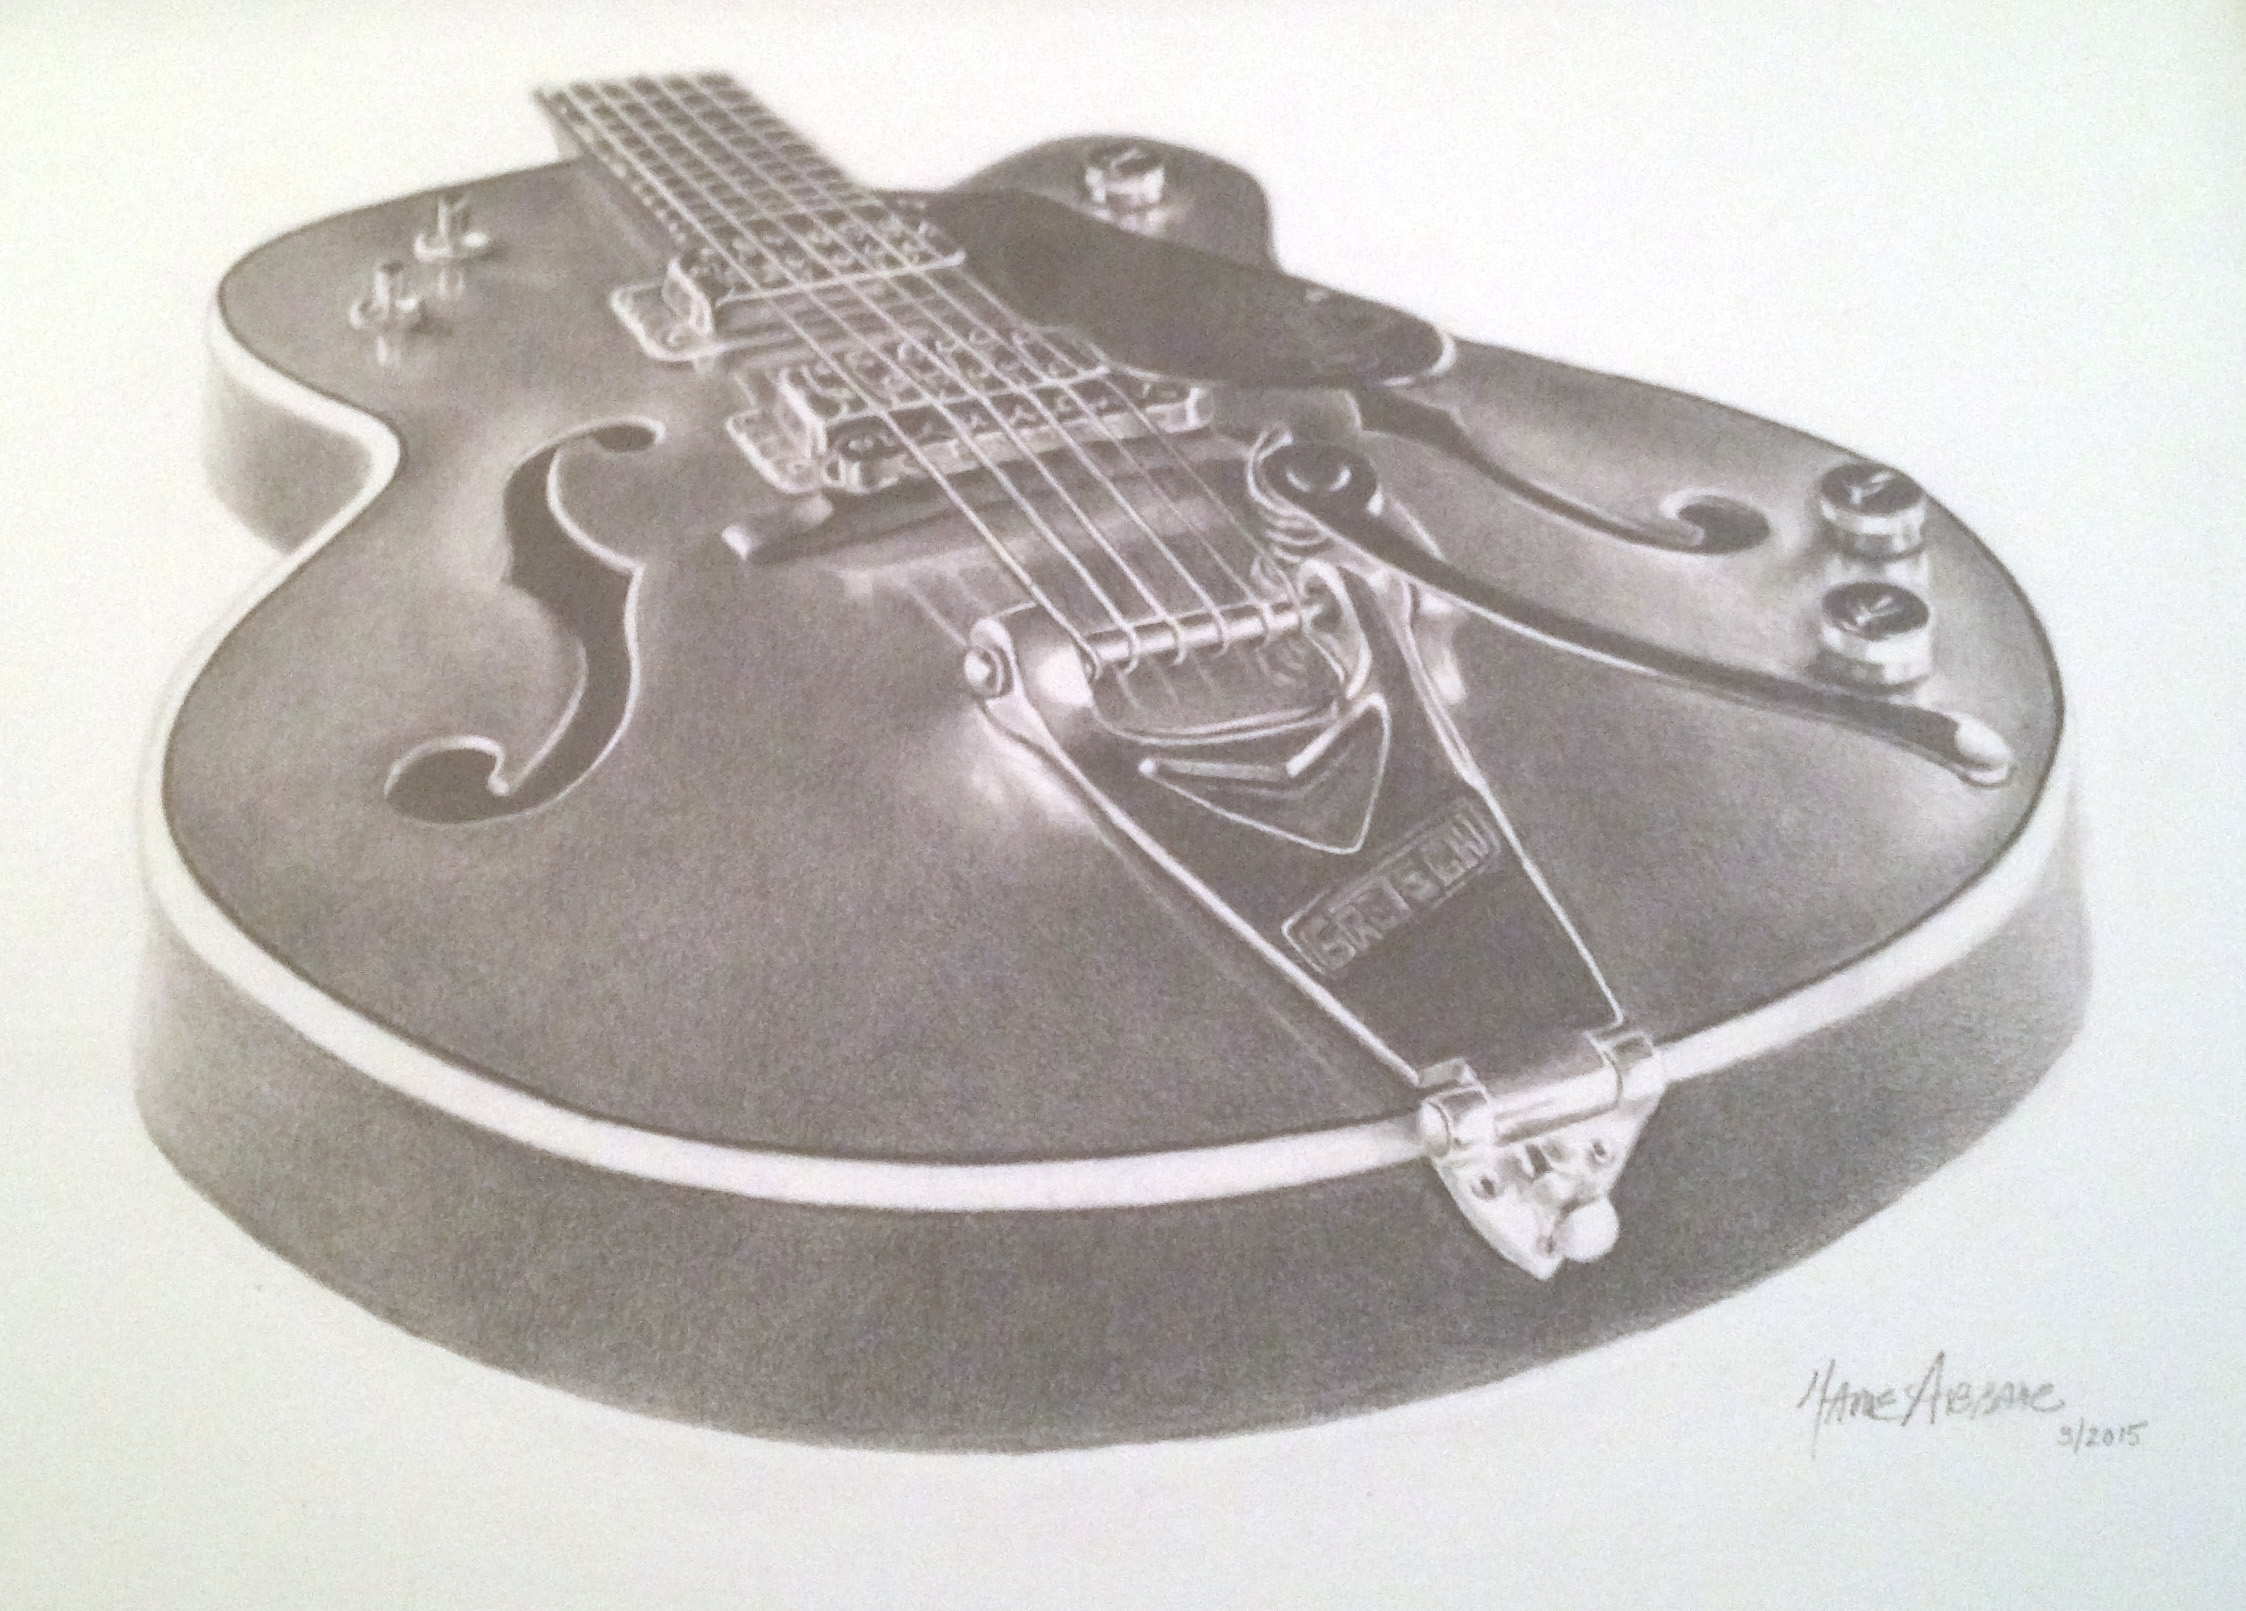 A Gretsch for Mike